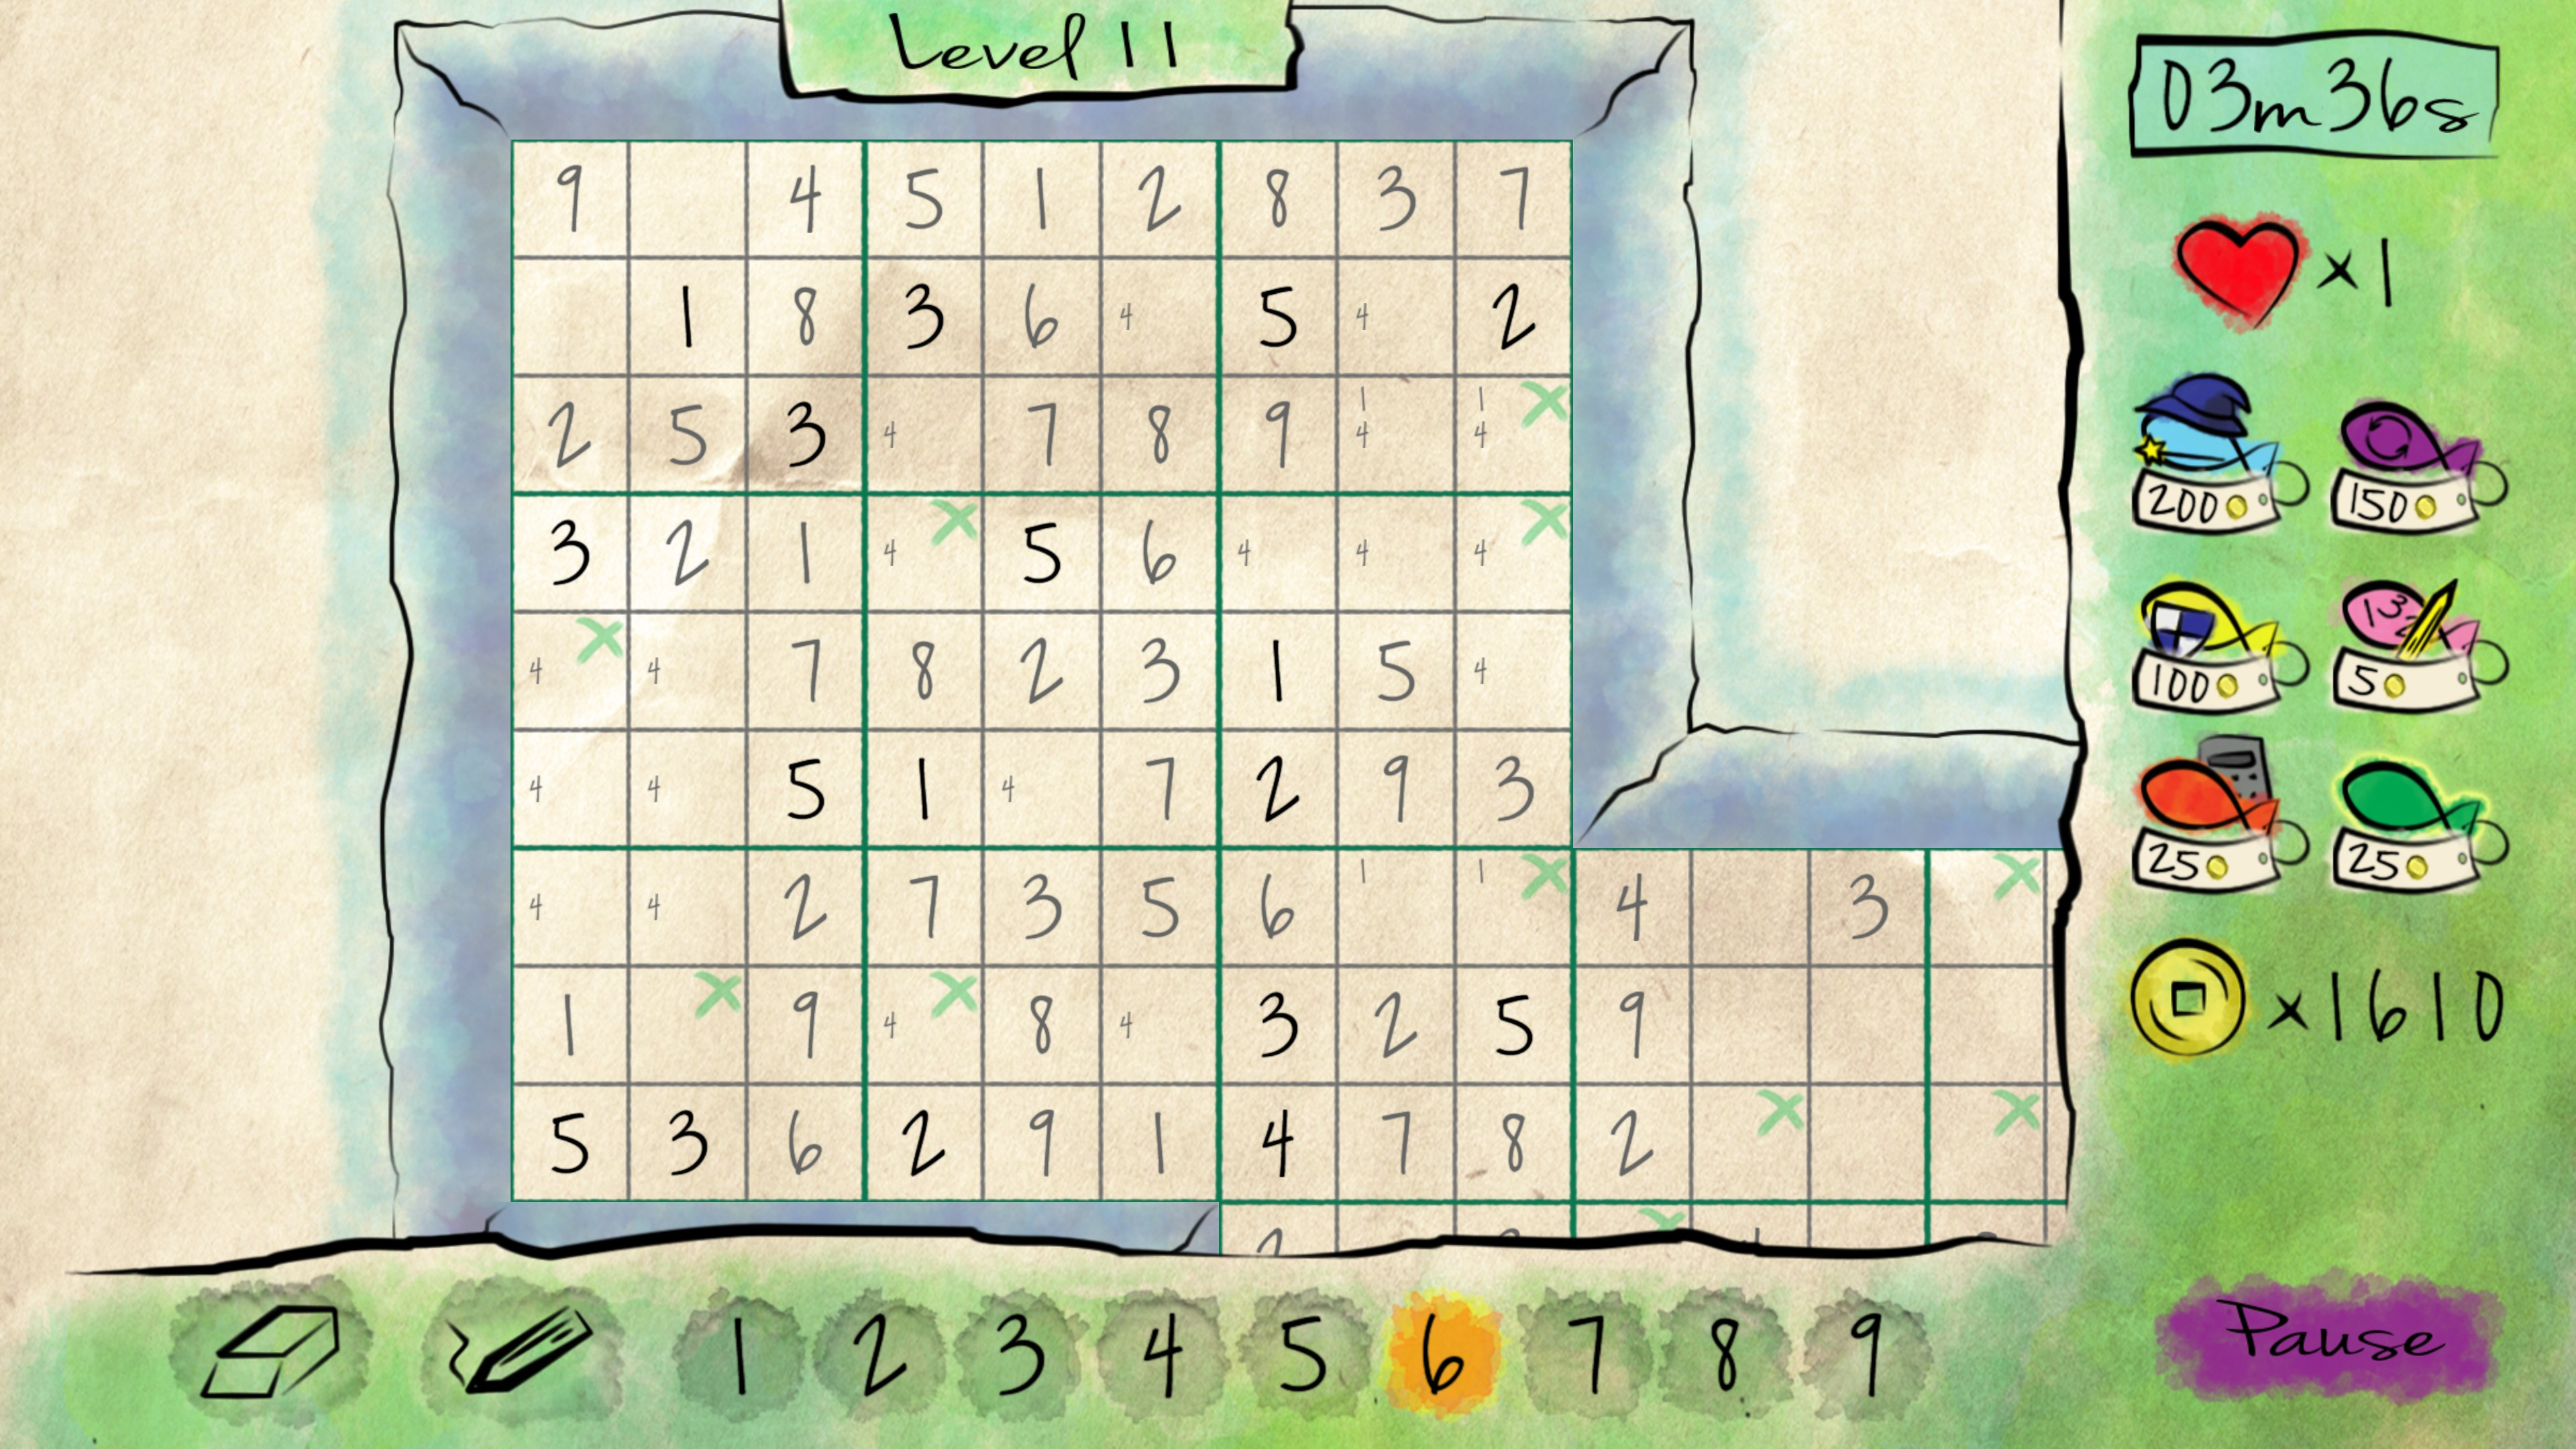 Overlapping sudoku with penciled in values